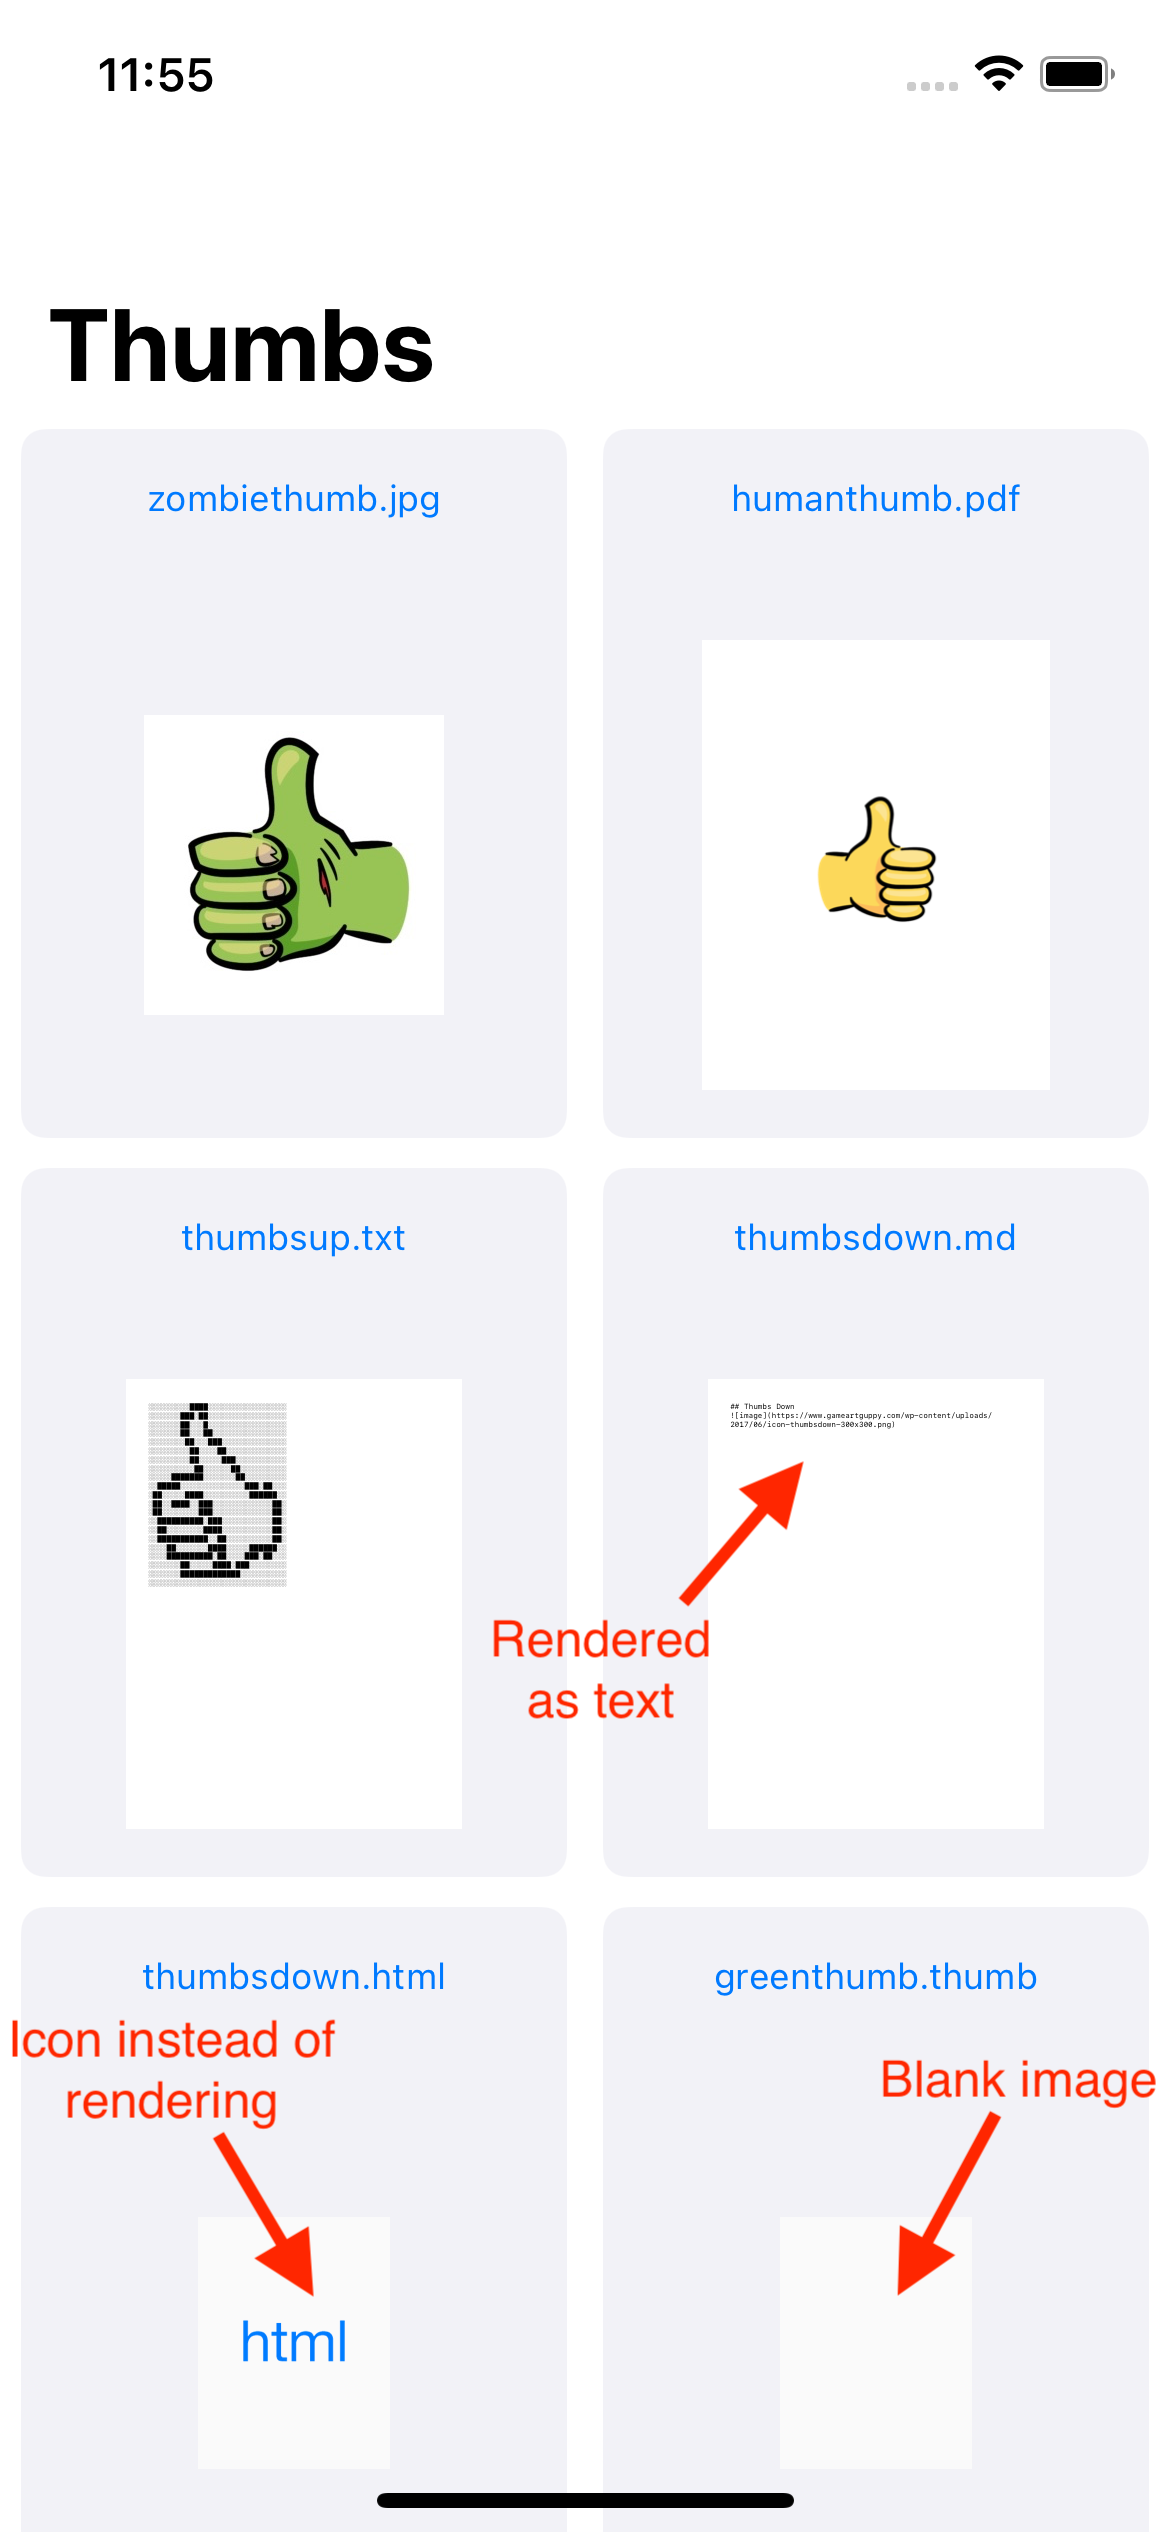 The RazeThumb app home screen containing a list of documents using the default thumbnails from Quick Look with annotations explaining that Markdown doesn't render, HTML uses a simple icon, and the custom .thumb thumbnail is not implemented